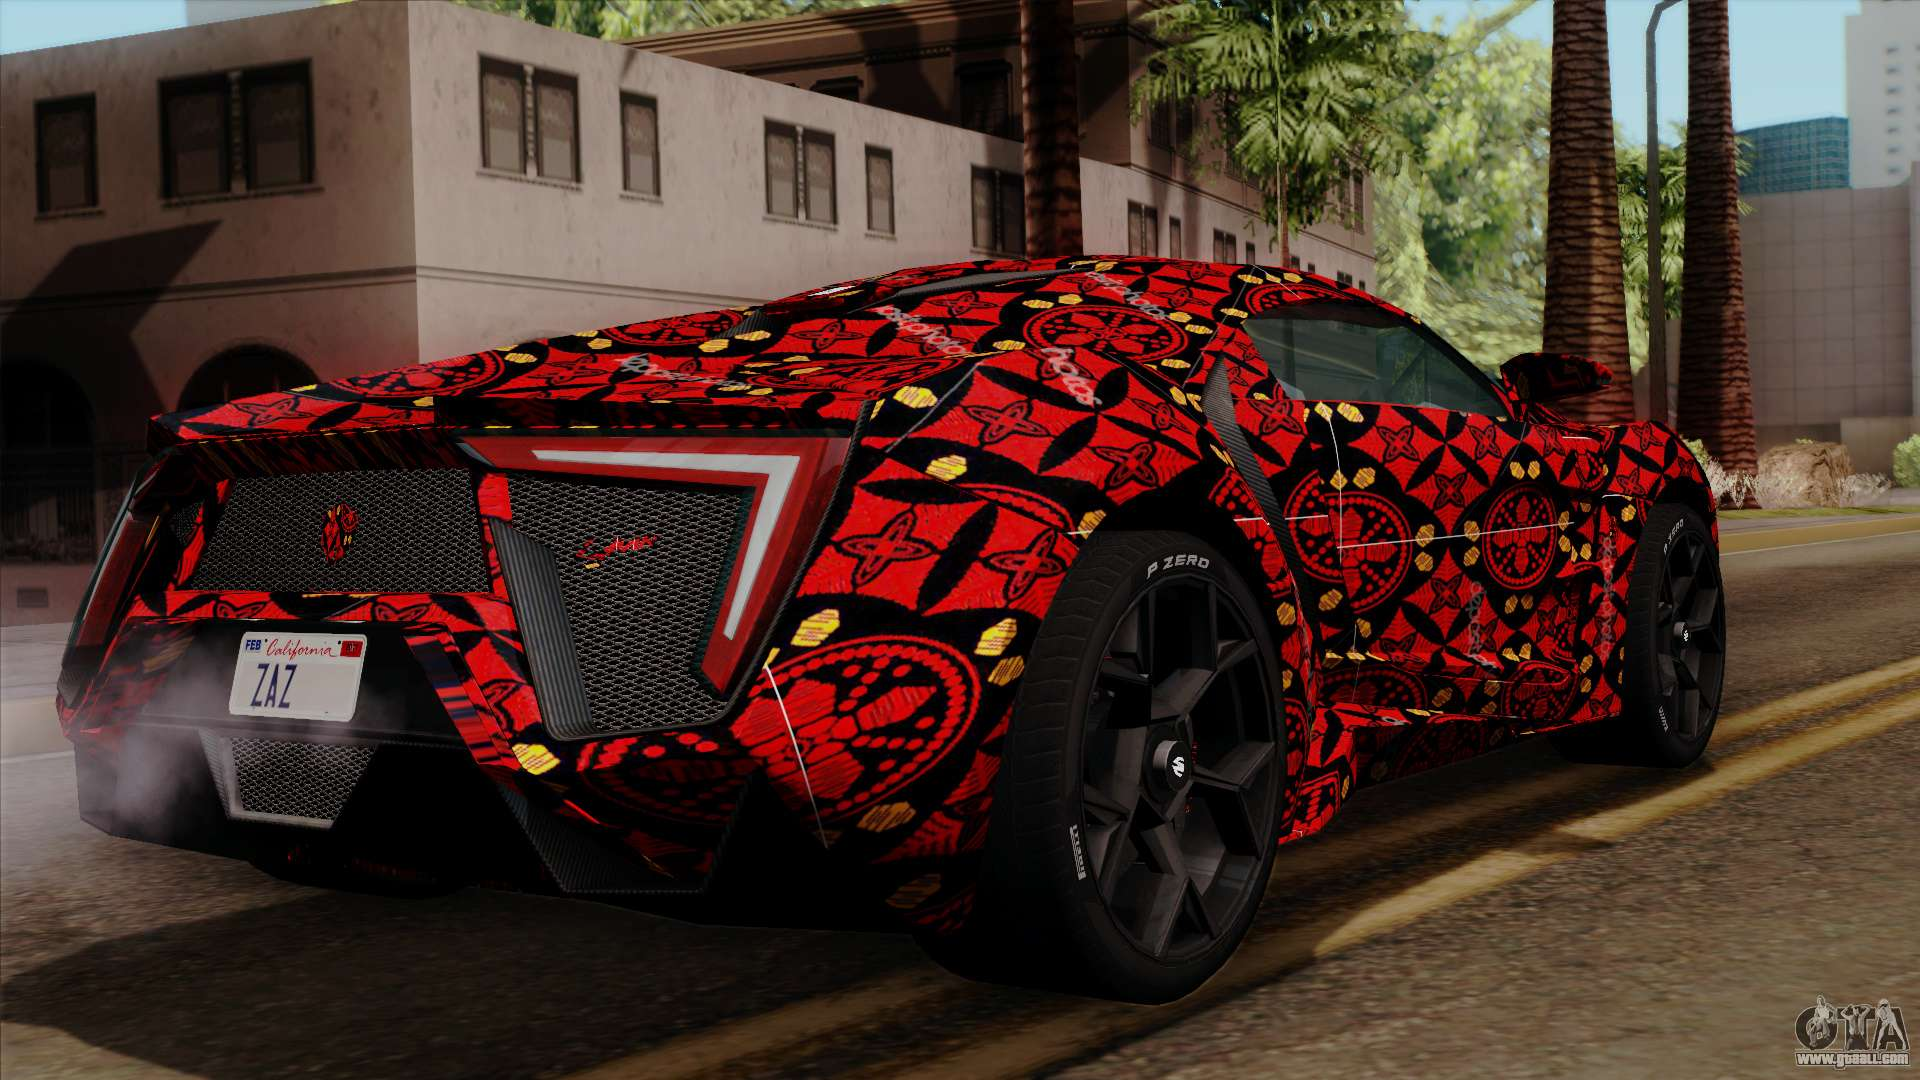 Gta San Andreas Wallpaper Hd Lykan Hypersport Batik For Gta San Andreas